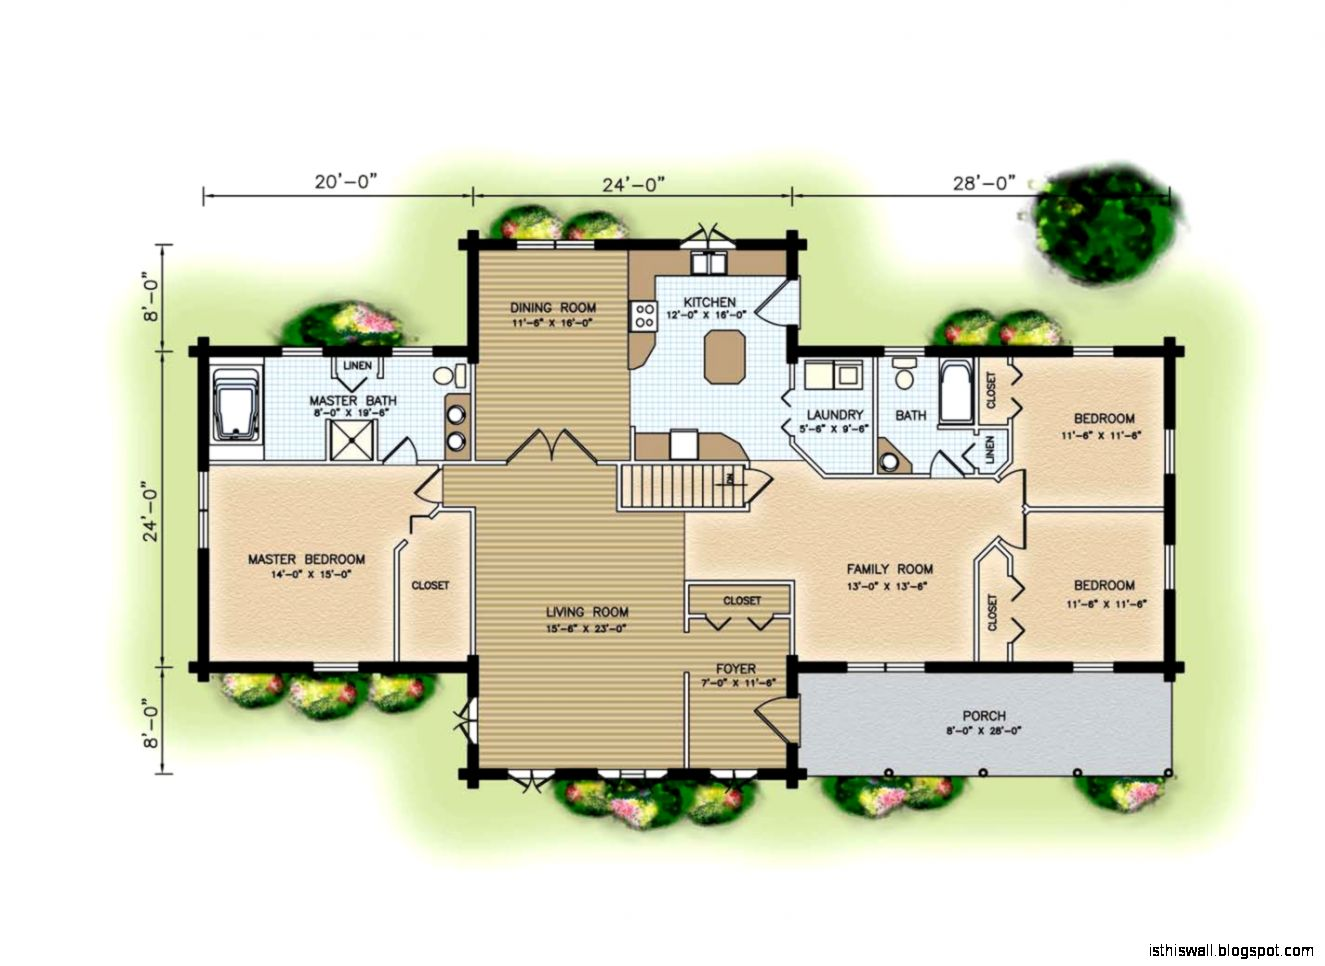 House Floor Plan Design Dream House Floor Plan Maker Dream Homes Floor